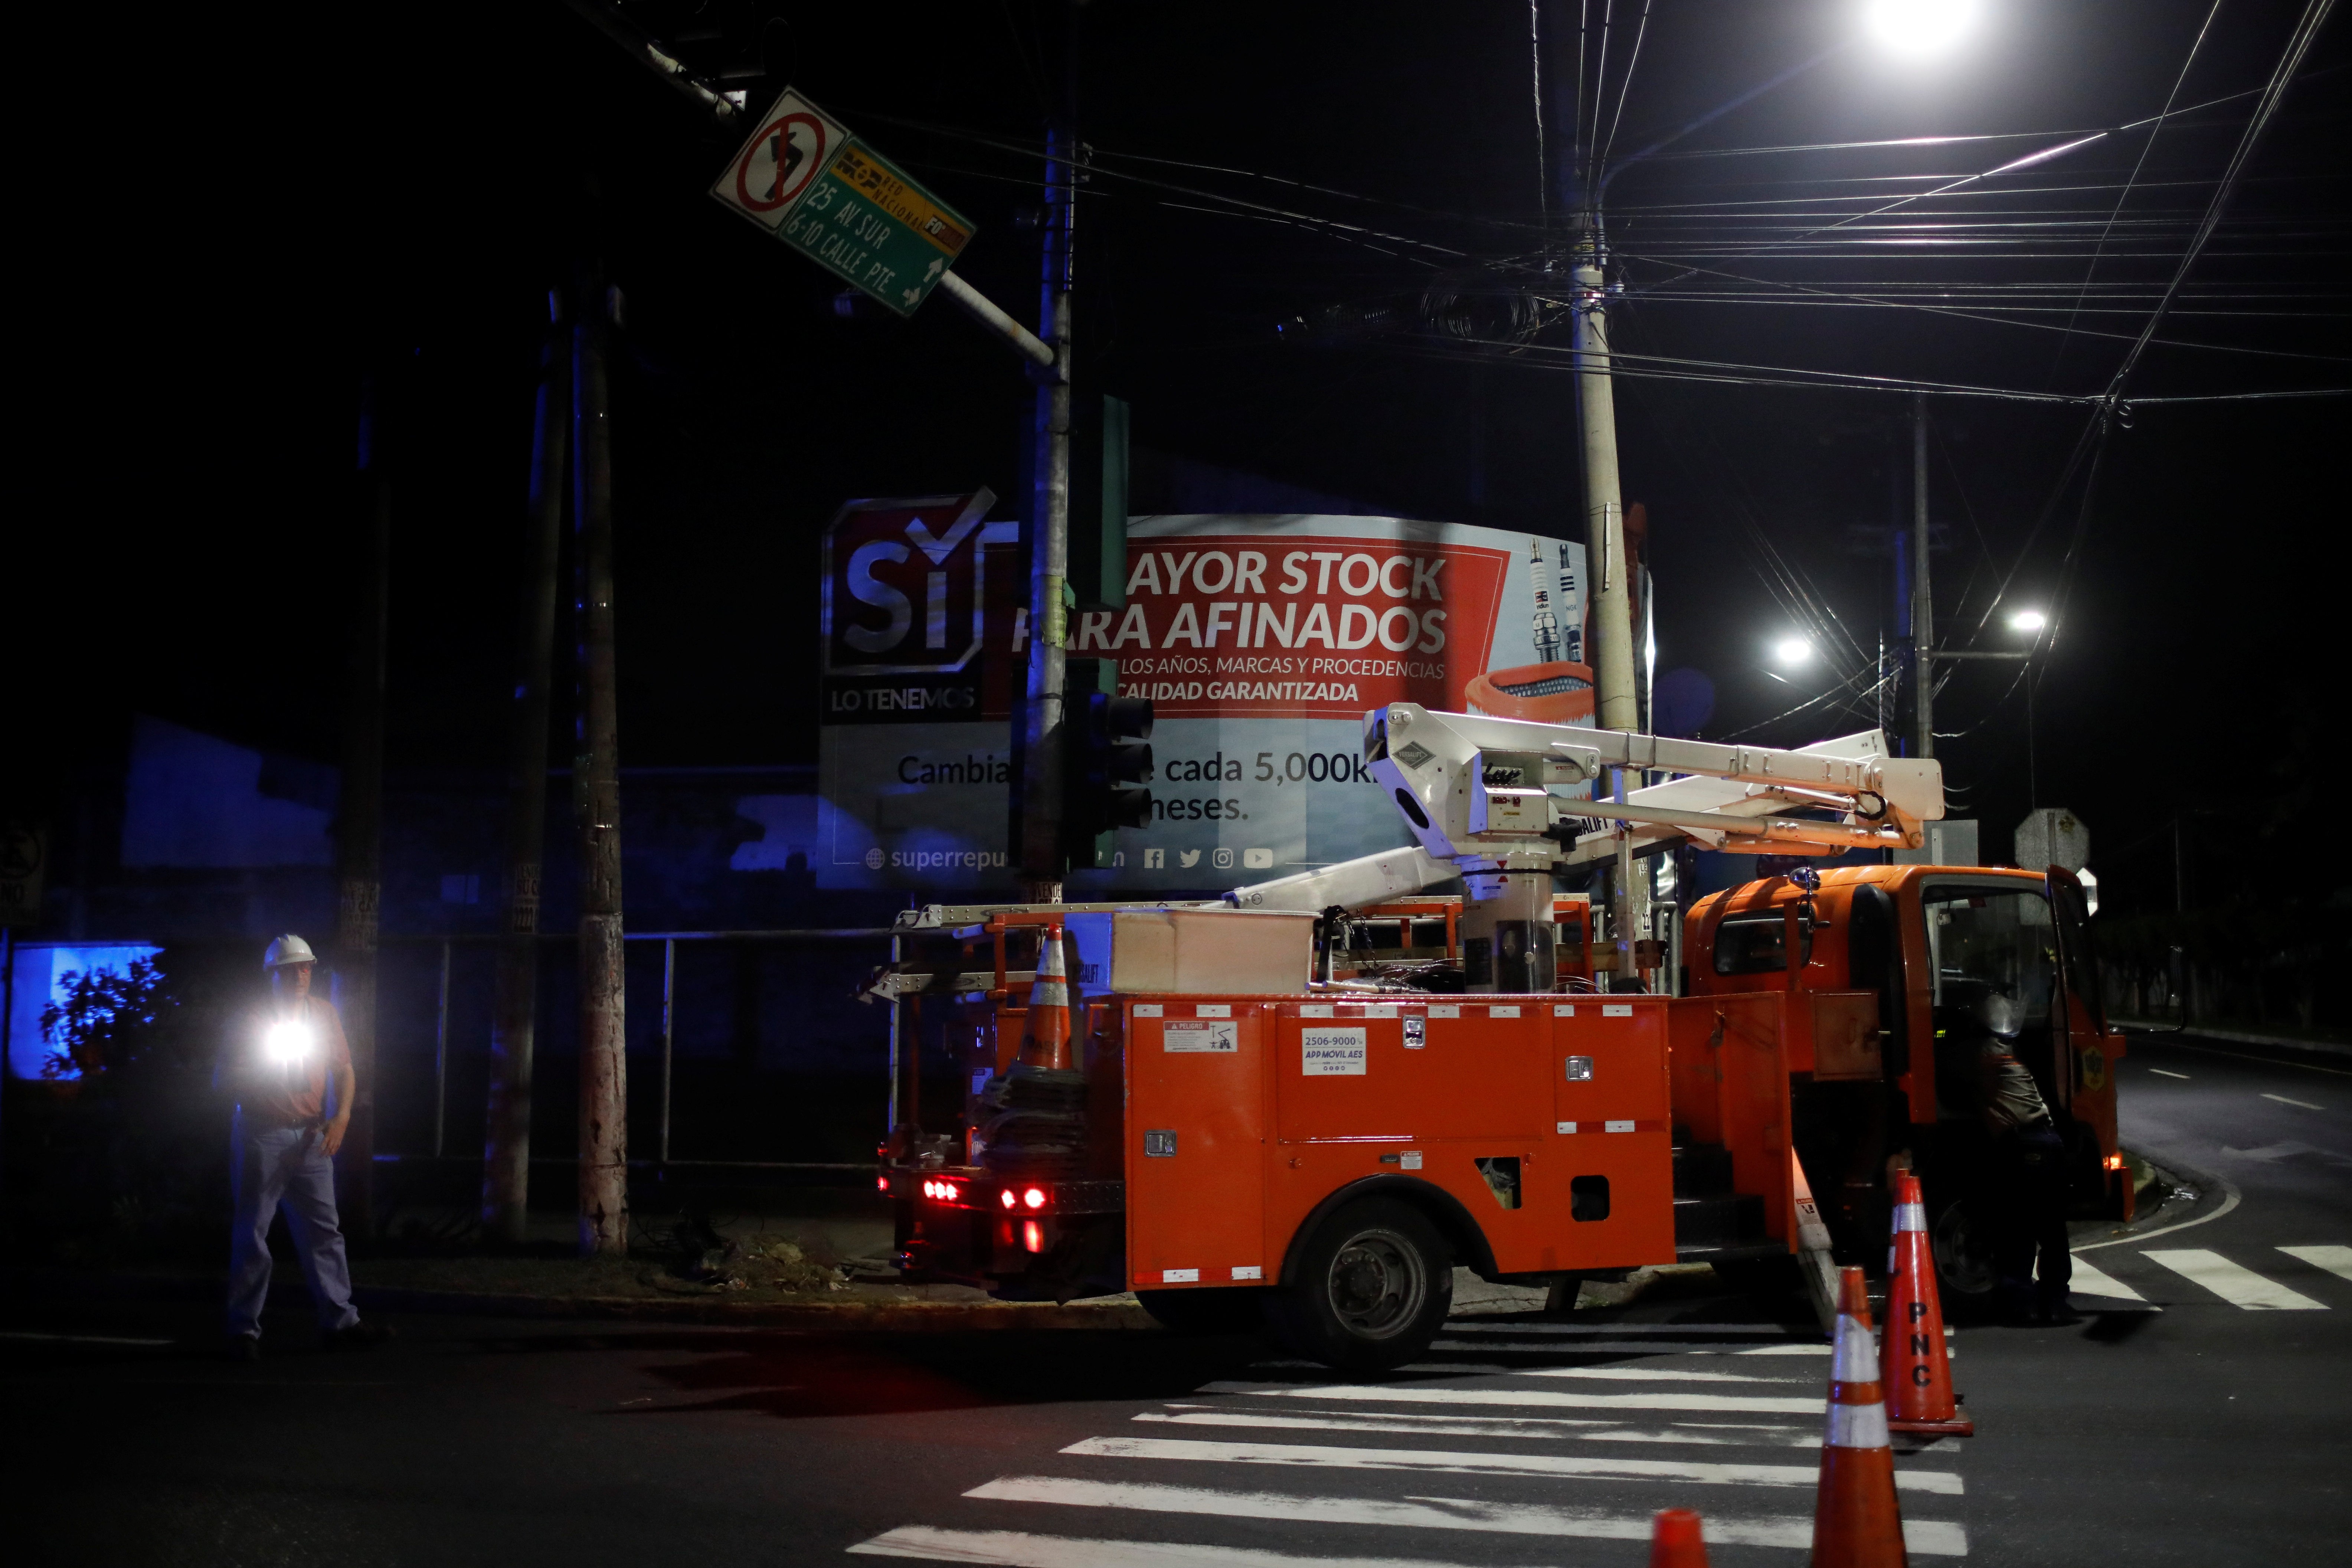 Electrical power company workers check transmission lines after an earthquake in San Salvador, El Salvador, July 31, 2019. REUTERS/Jose Cabezas